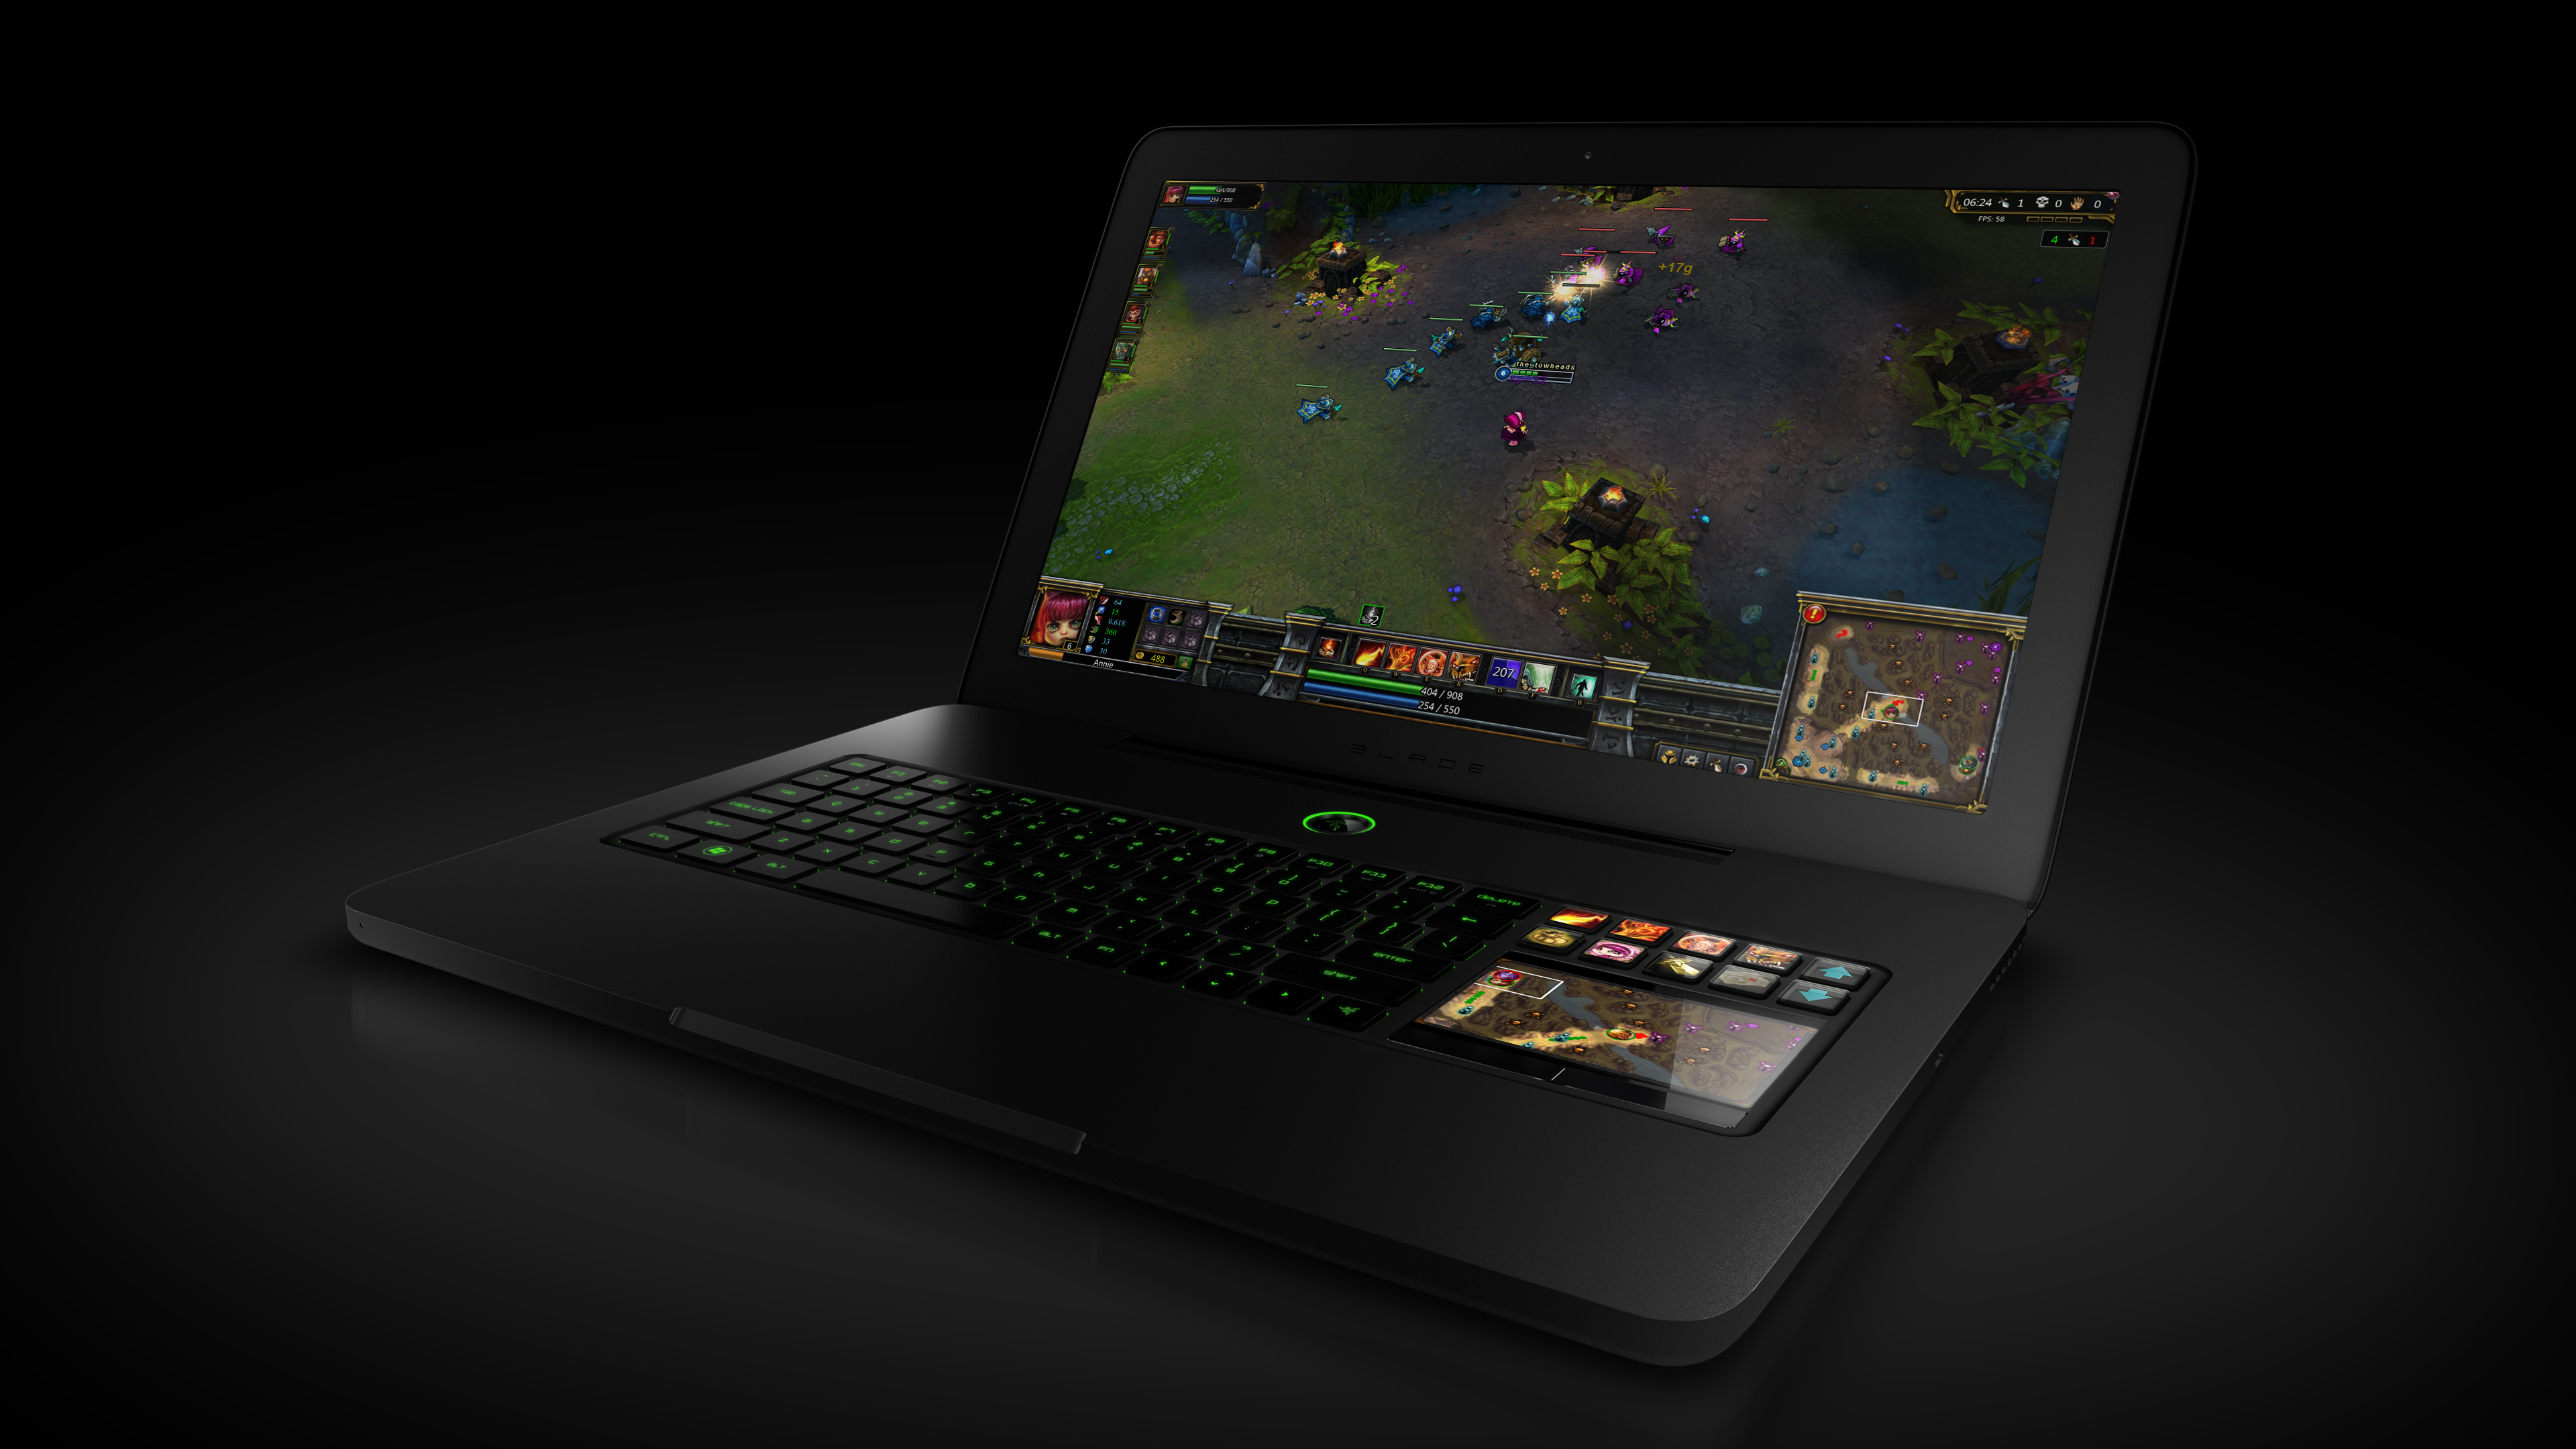 Two Razer Blade Gaming Laptop Prototypes Stolen